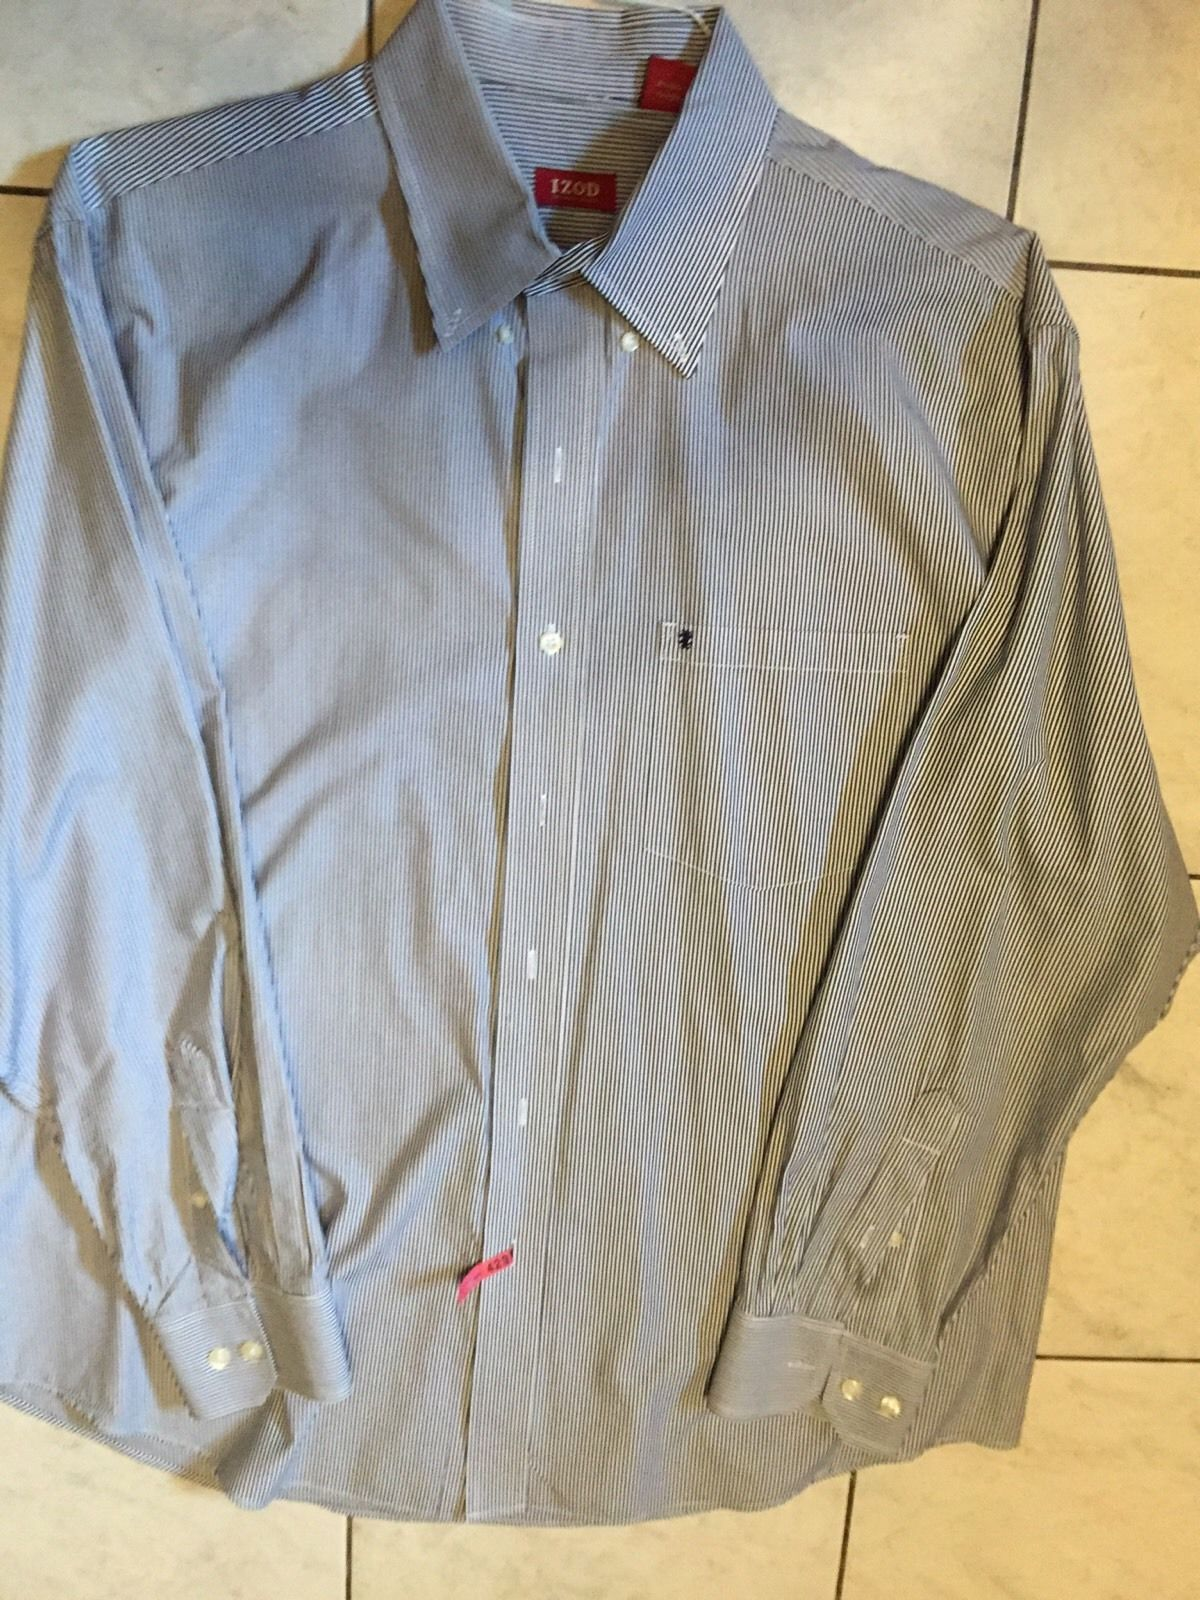 Izod Mens Pinstripe Long Sleeve Button Down Dress Shirt Blue/White size L EUC